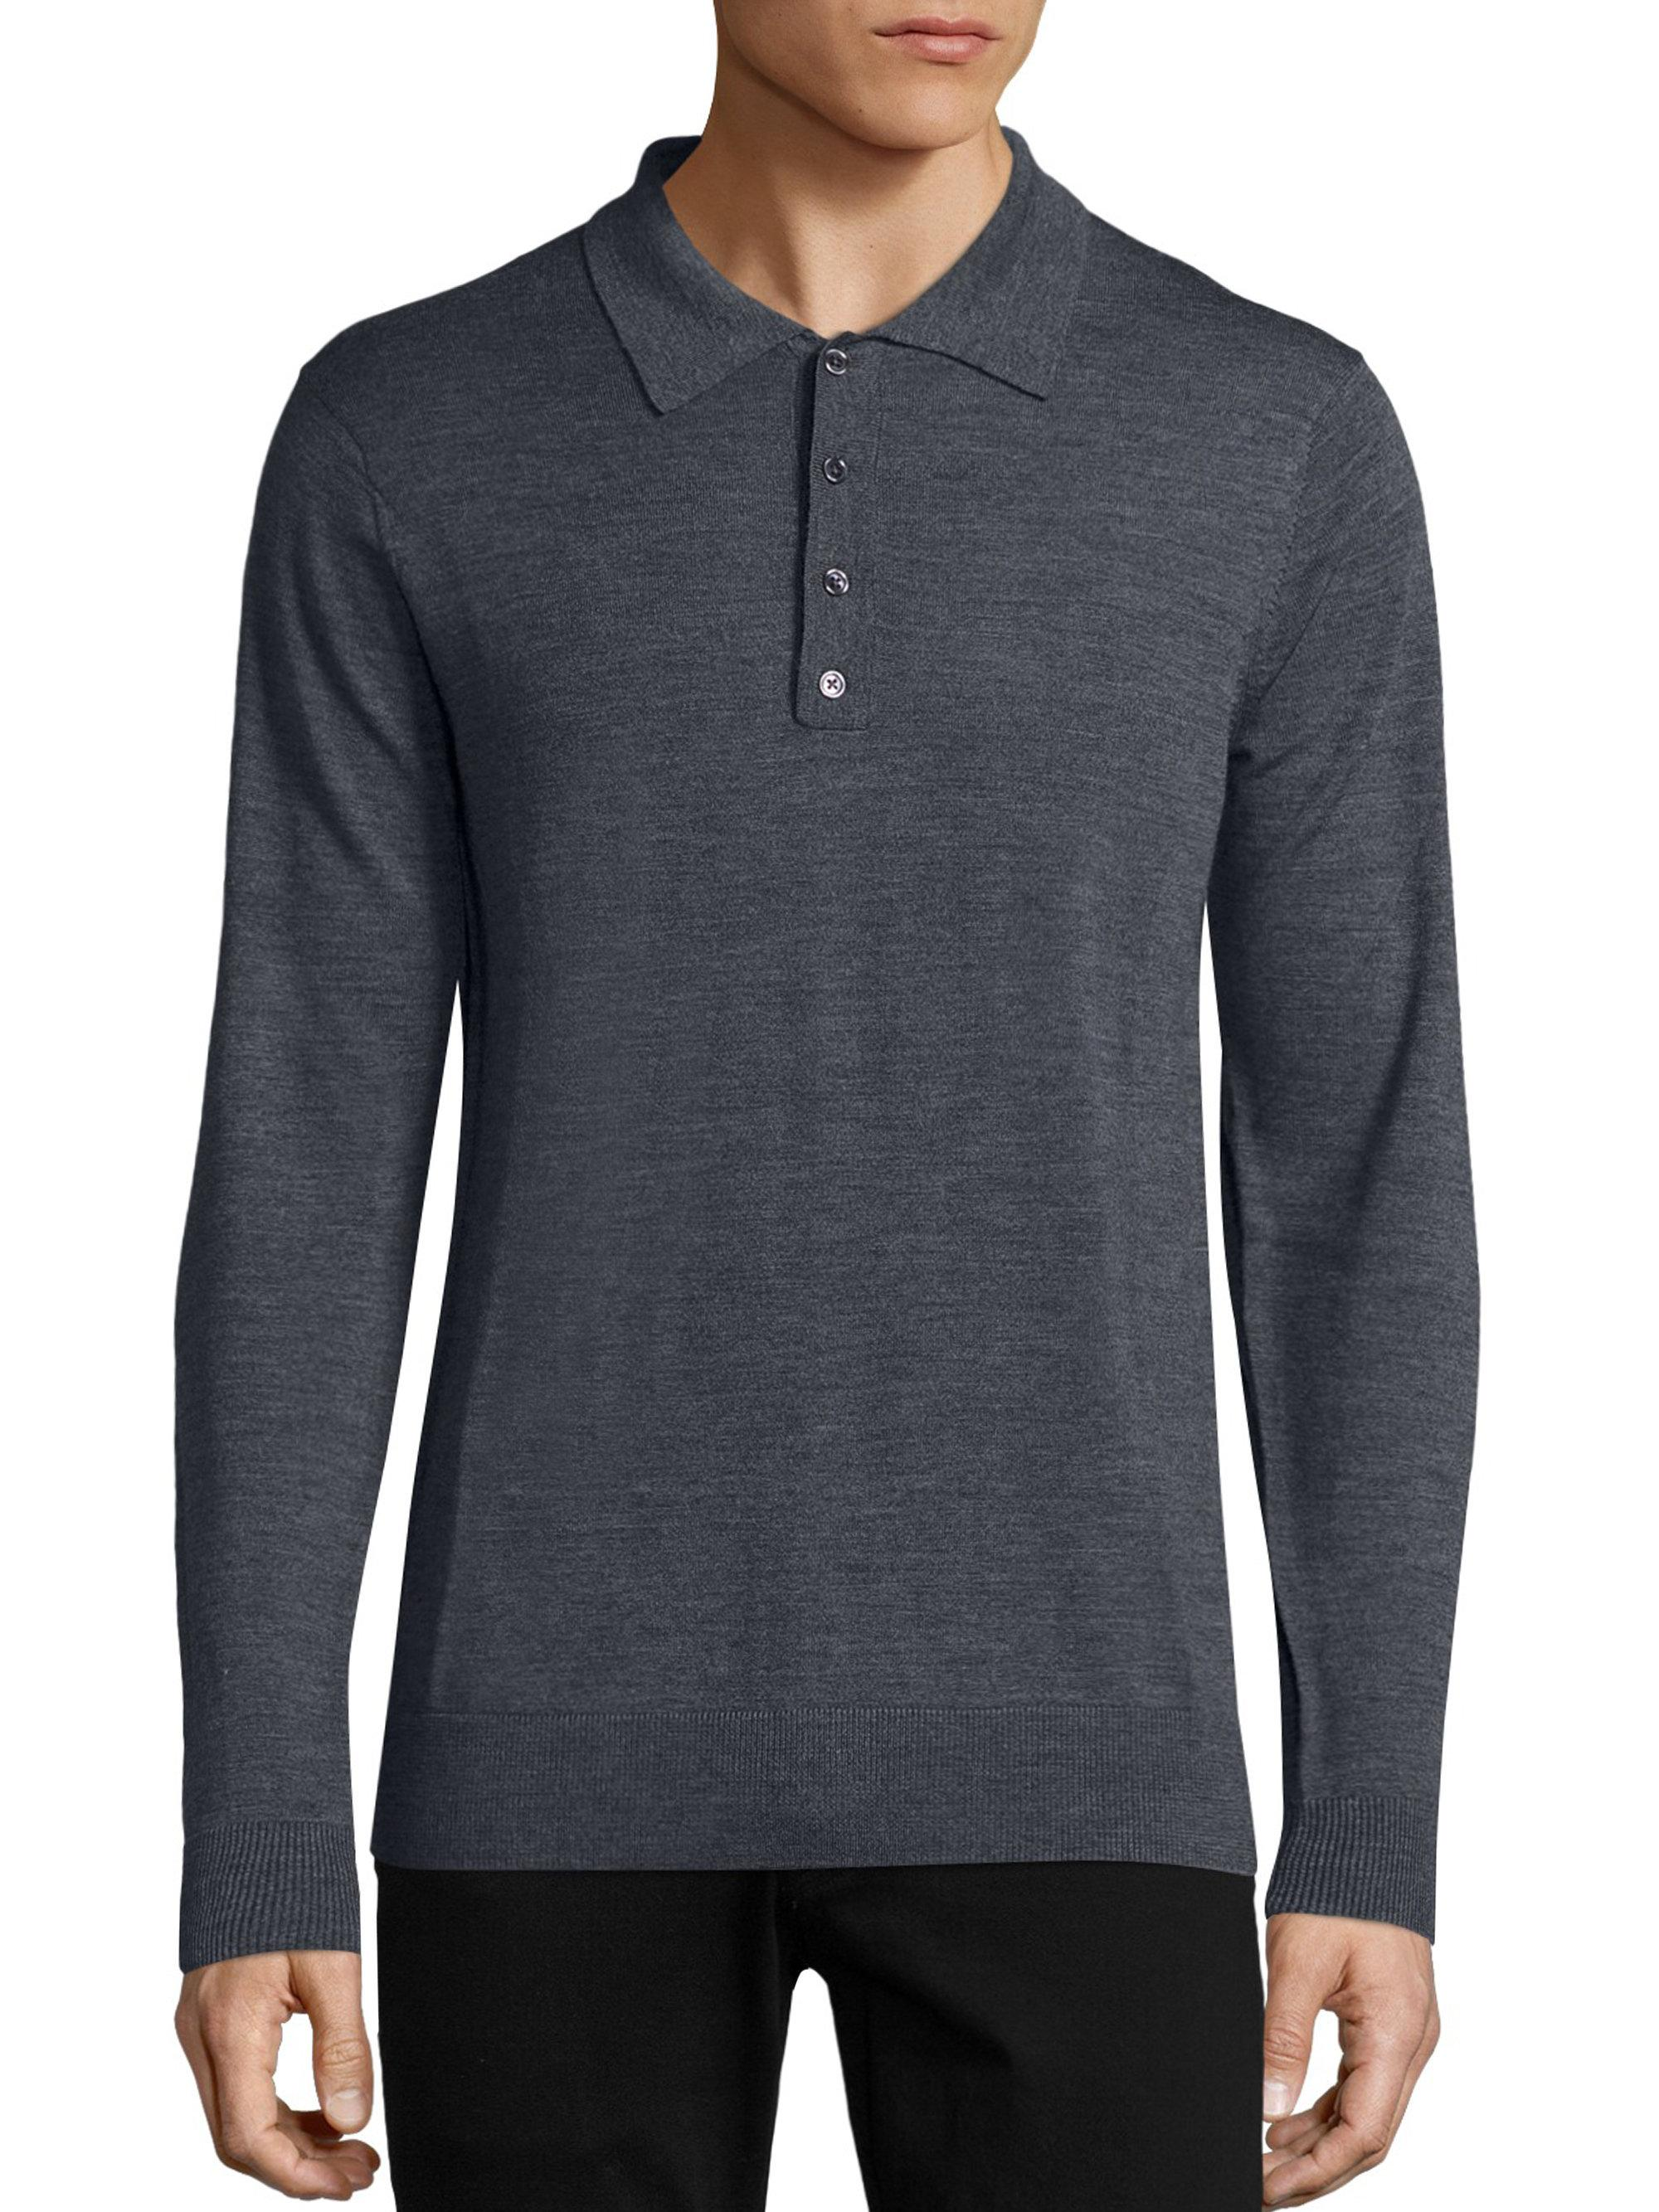 G/fore Long Sleeve Merino Wool Polo in Gray for Men